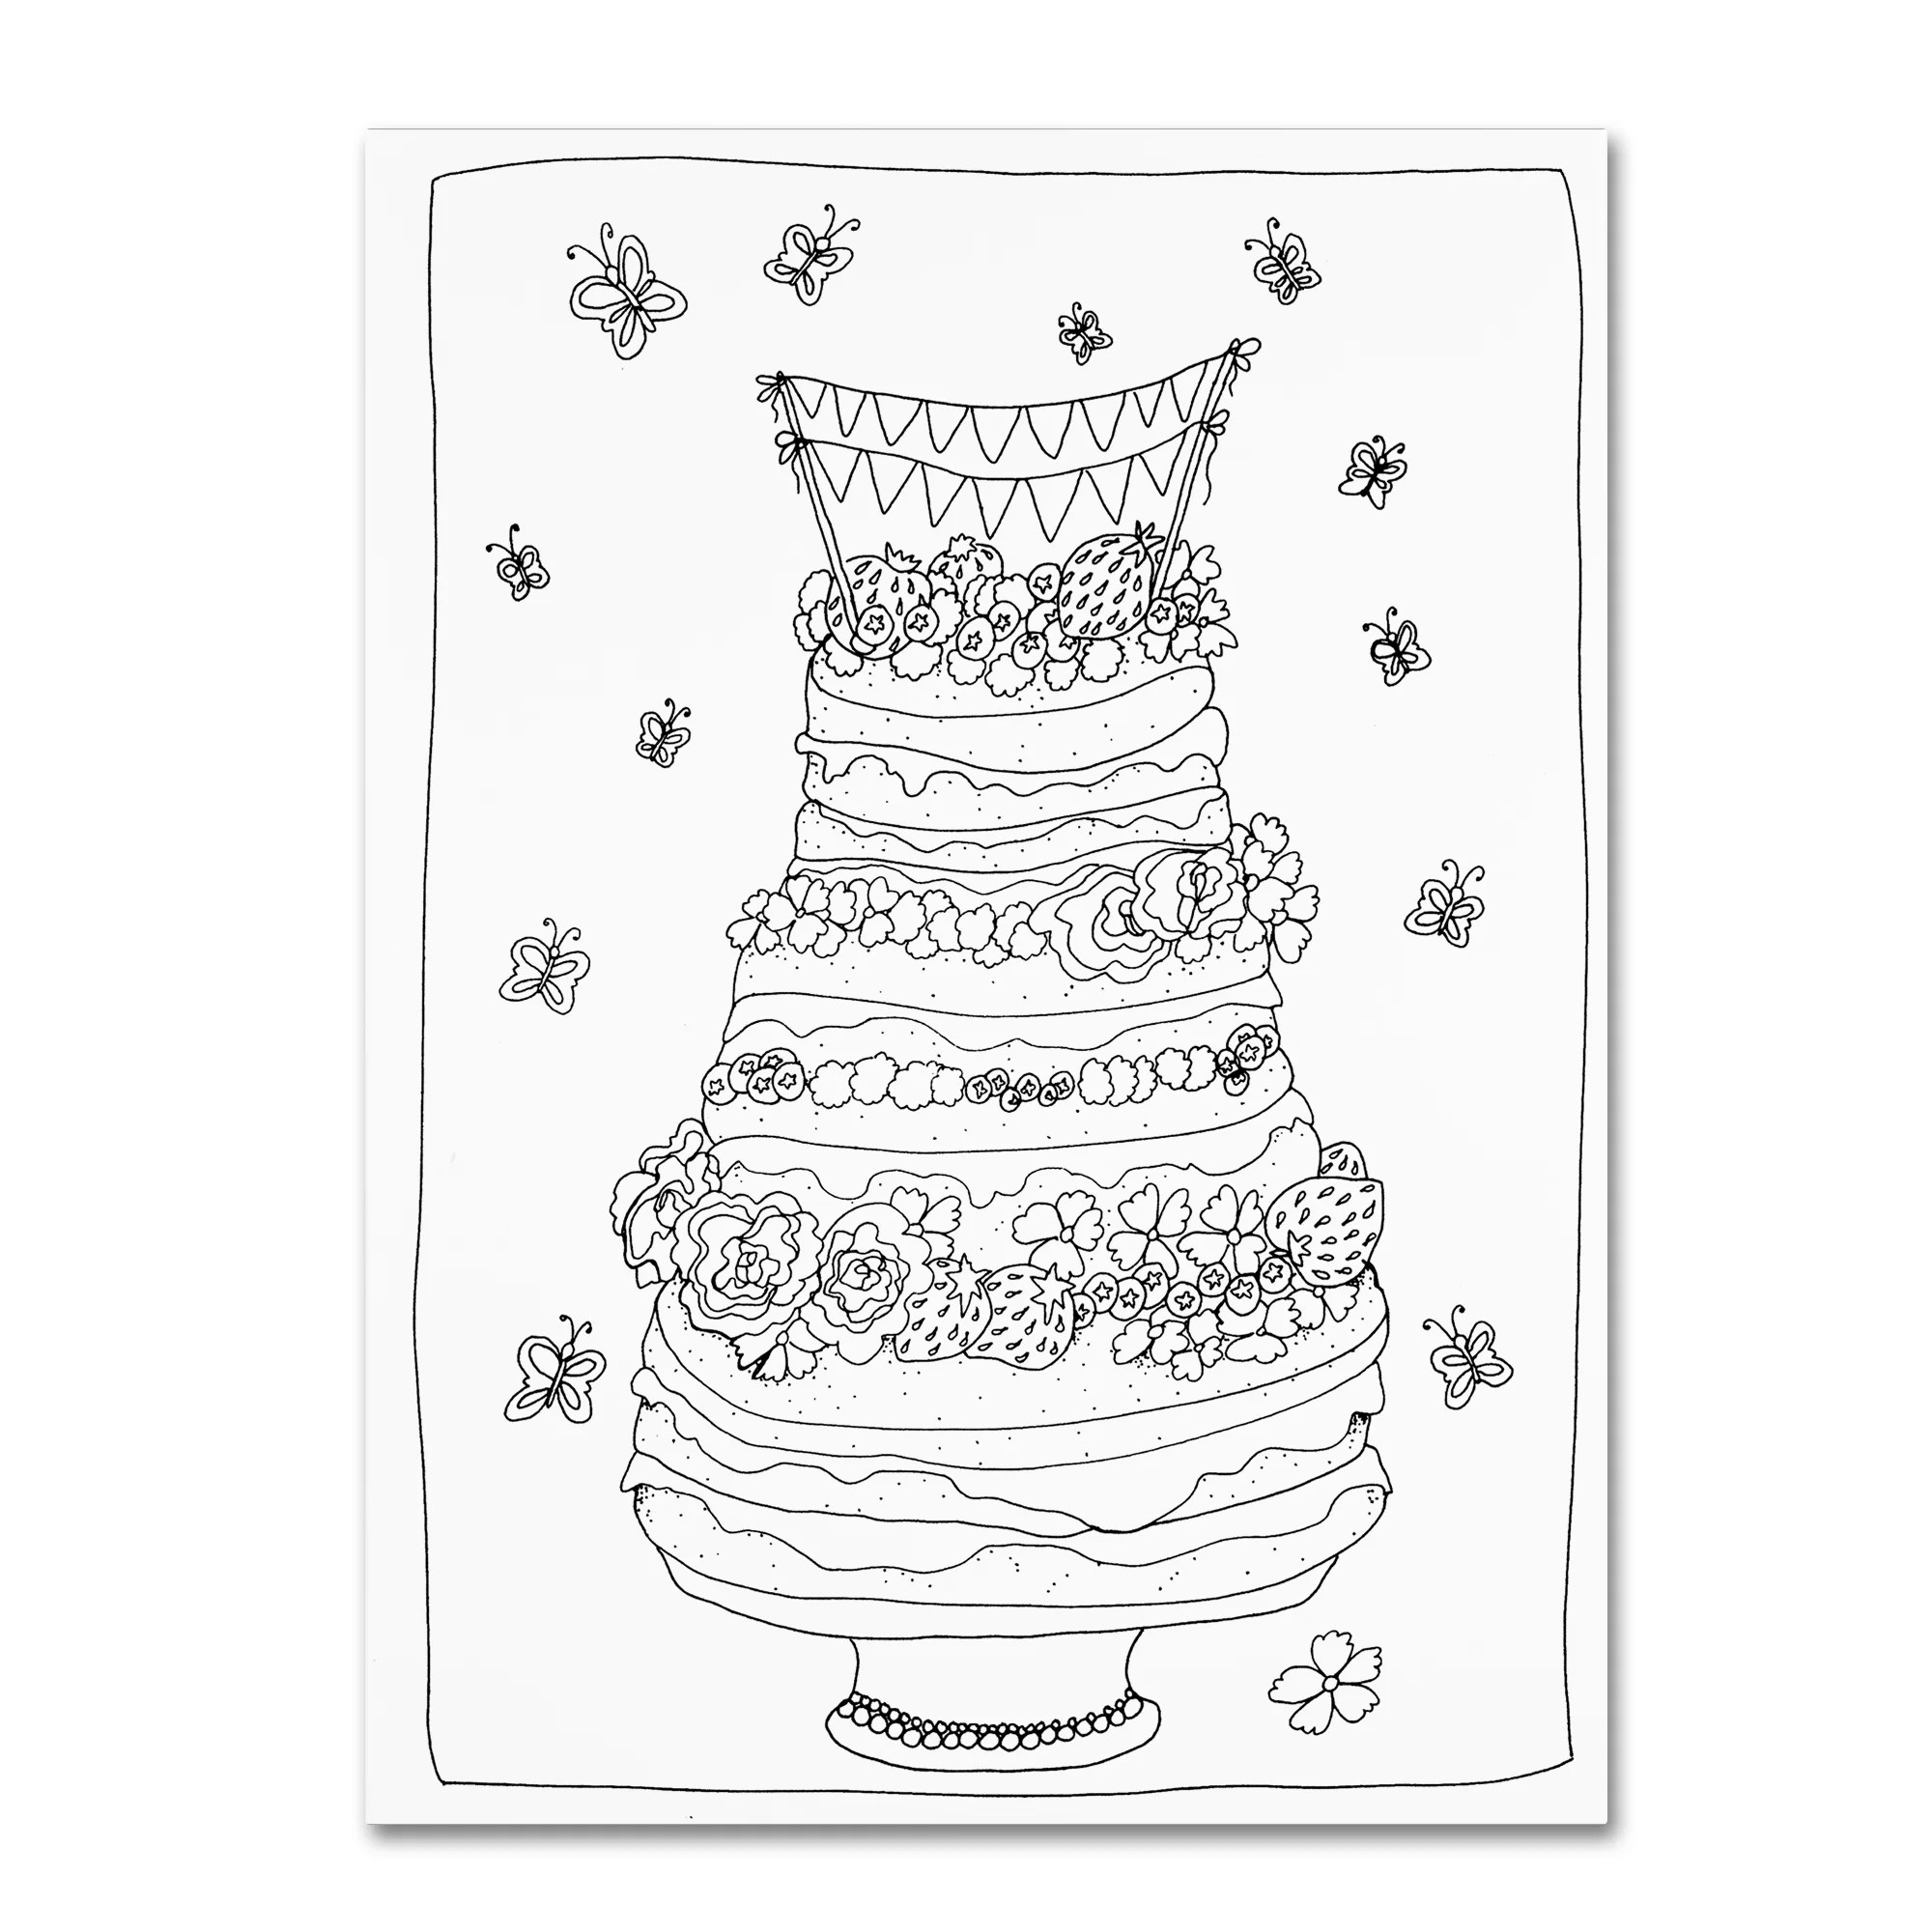 Trademark Art Fancy Cake Graphic Art Print On Wrapped